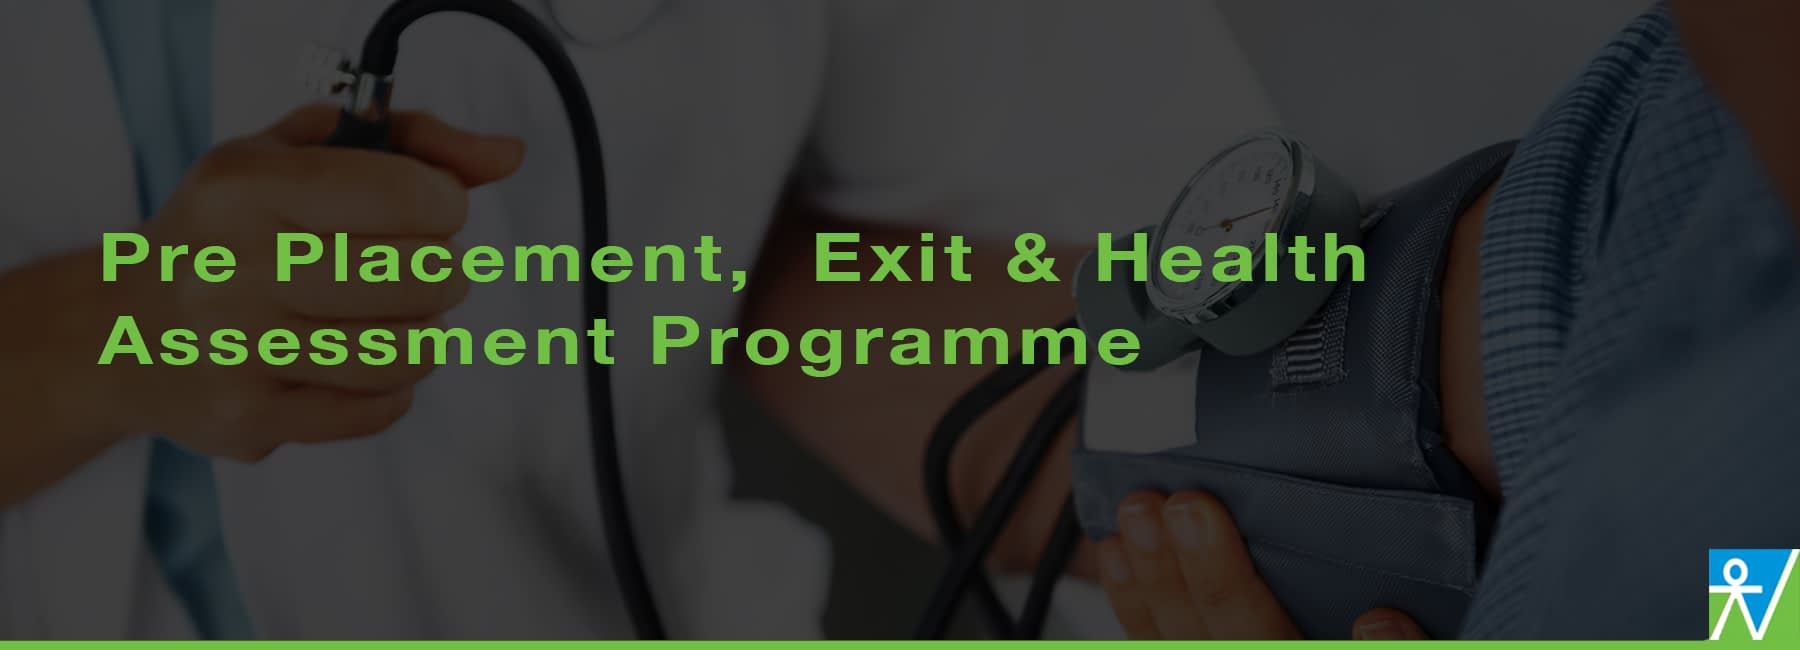 pre placement health testing in the workplace - Auckland, New Zealand